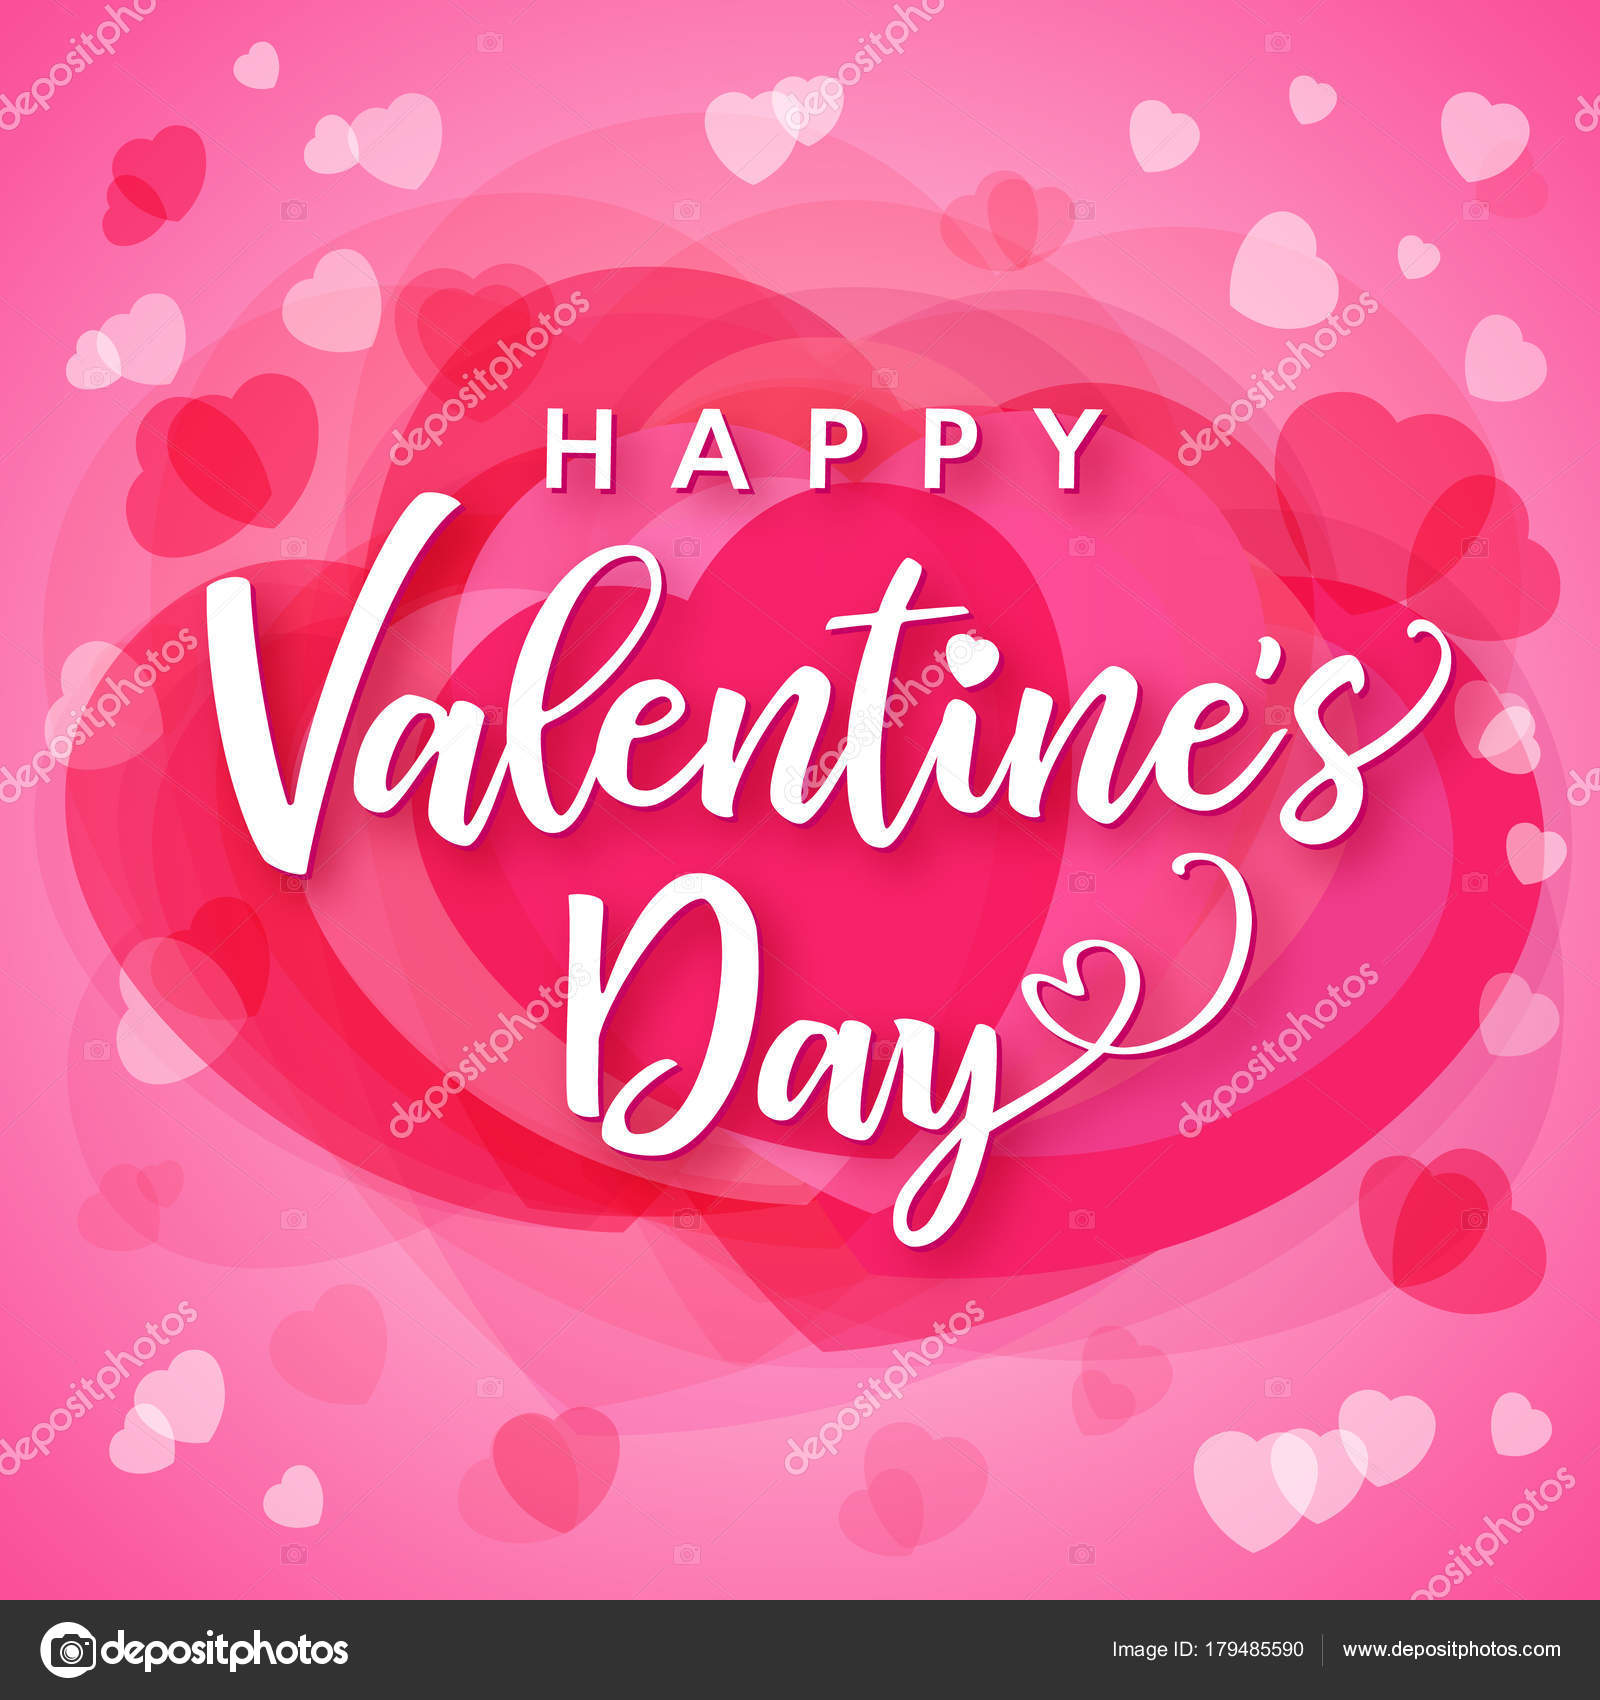 Valentines Day Lettering Calligraphy Pink Hearts Background Greeting